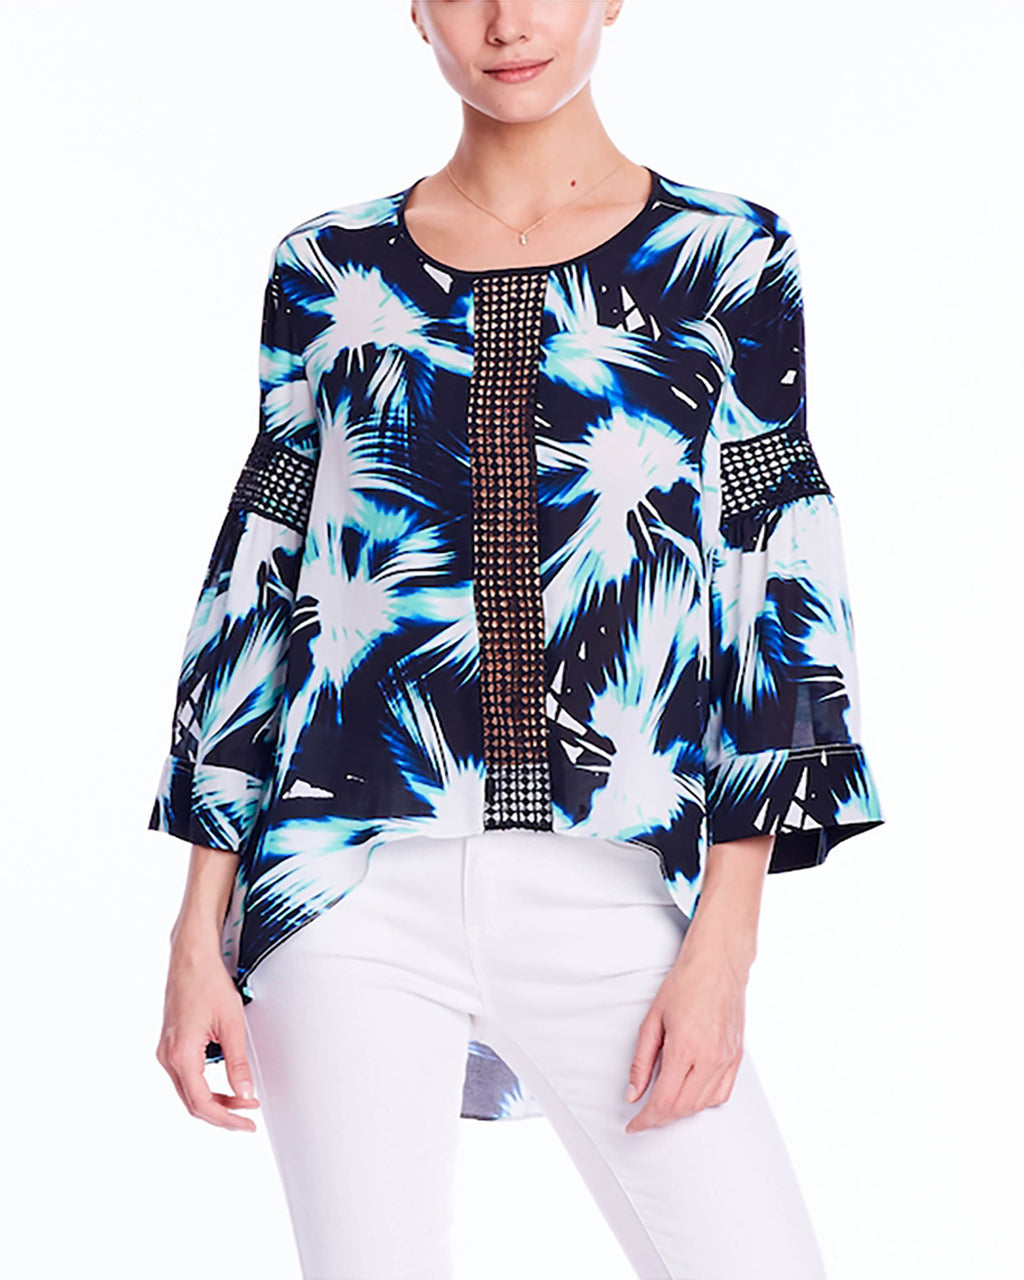 BH10234 - FAN BURST PRINT HI-LO TRIM SHIRT - samples - tops - Vaca-ready. This hi-lo shirt has breezy long sleeves and a print that will whisk you straight to the islands. Embroidered center detail. Final Sale